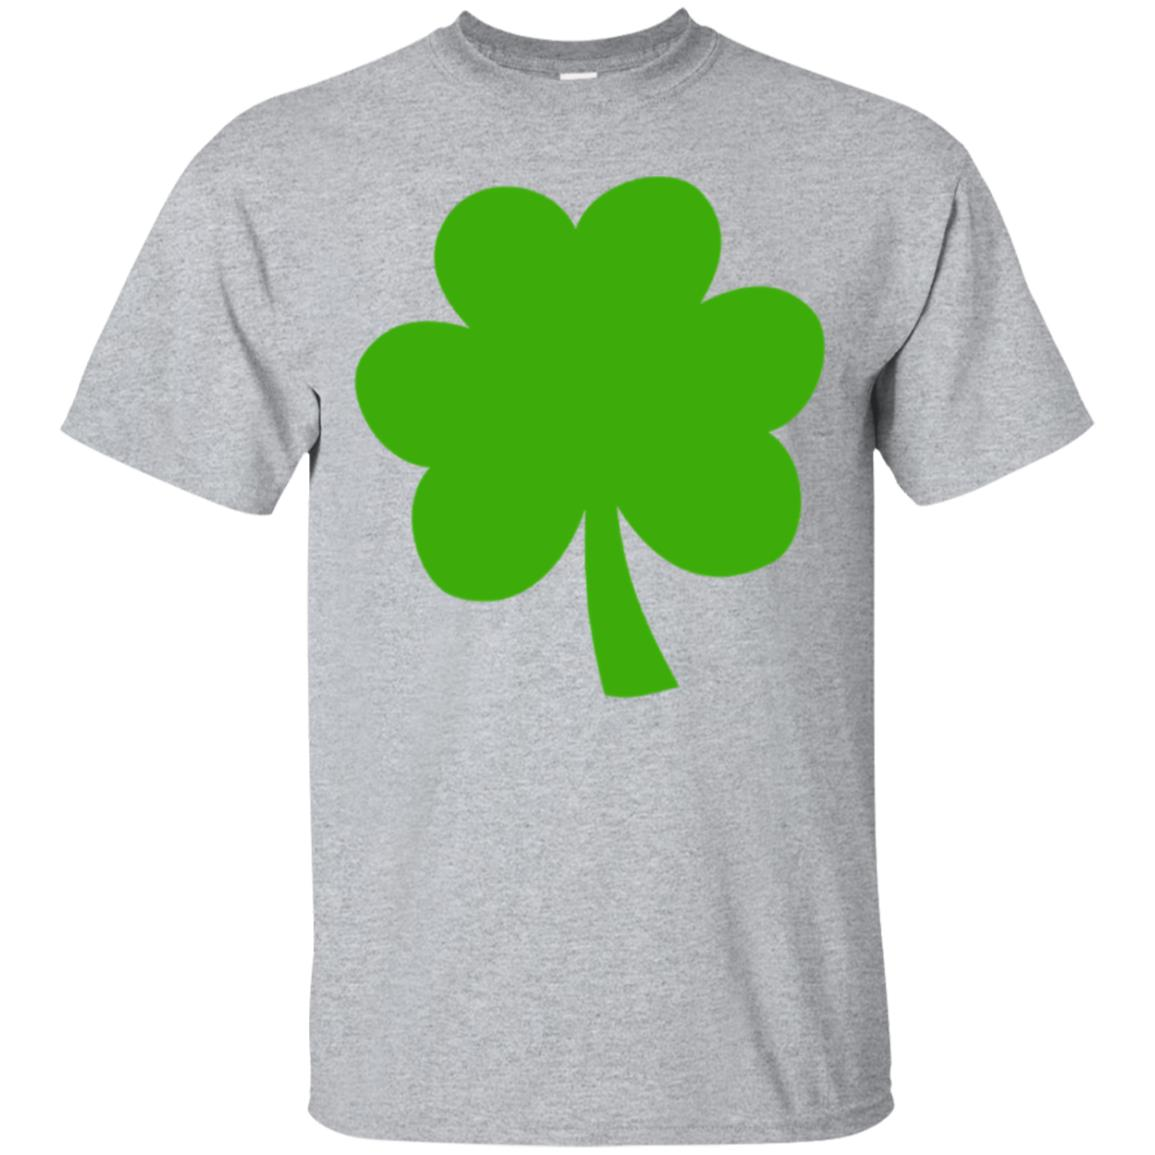 Womens We got Lucky Cute Shirt St. Patricks Day Pregnancy Announce 99promocode